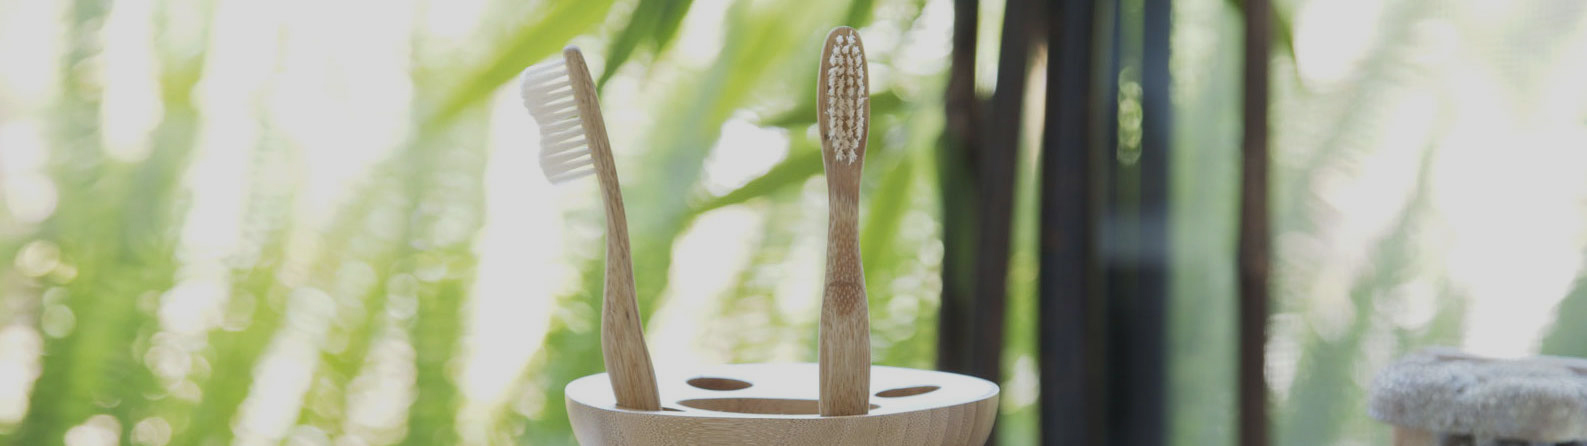 Product Breakdown: Brush with Bamboo Toothbrushes